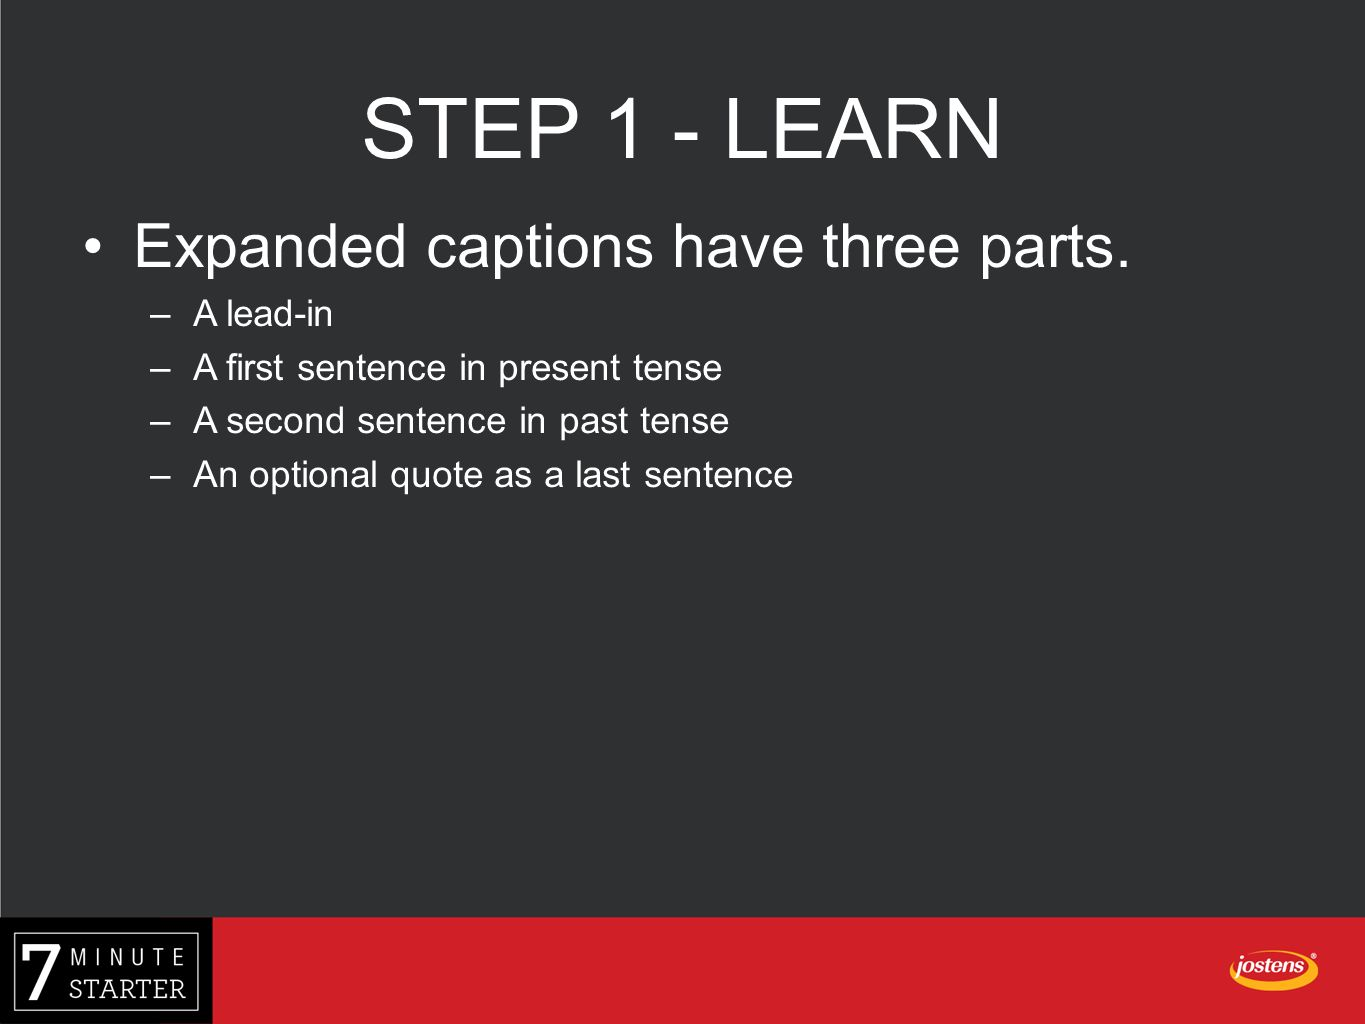 STEP 1 - LEARN Expanded captions have three parts. A lead-in